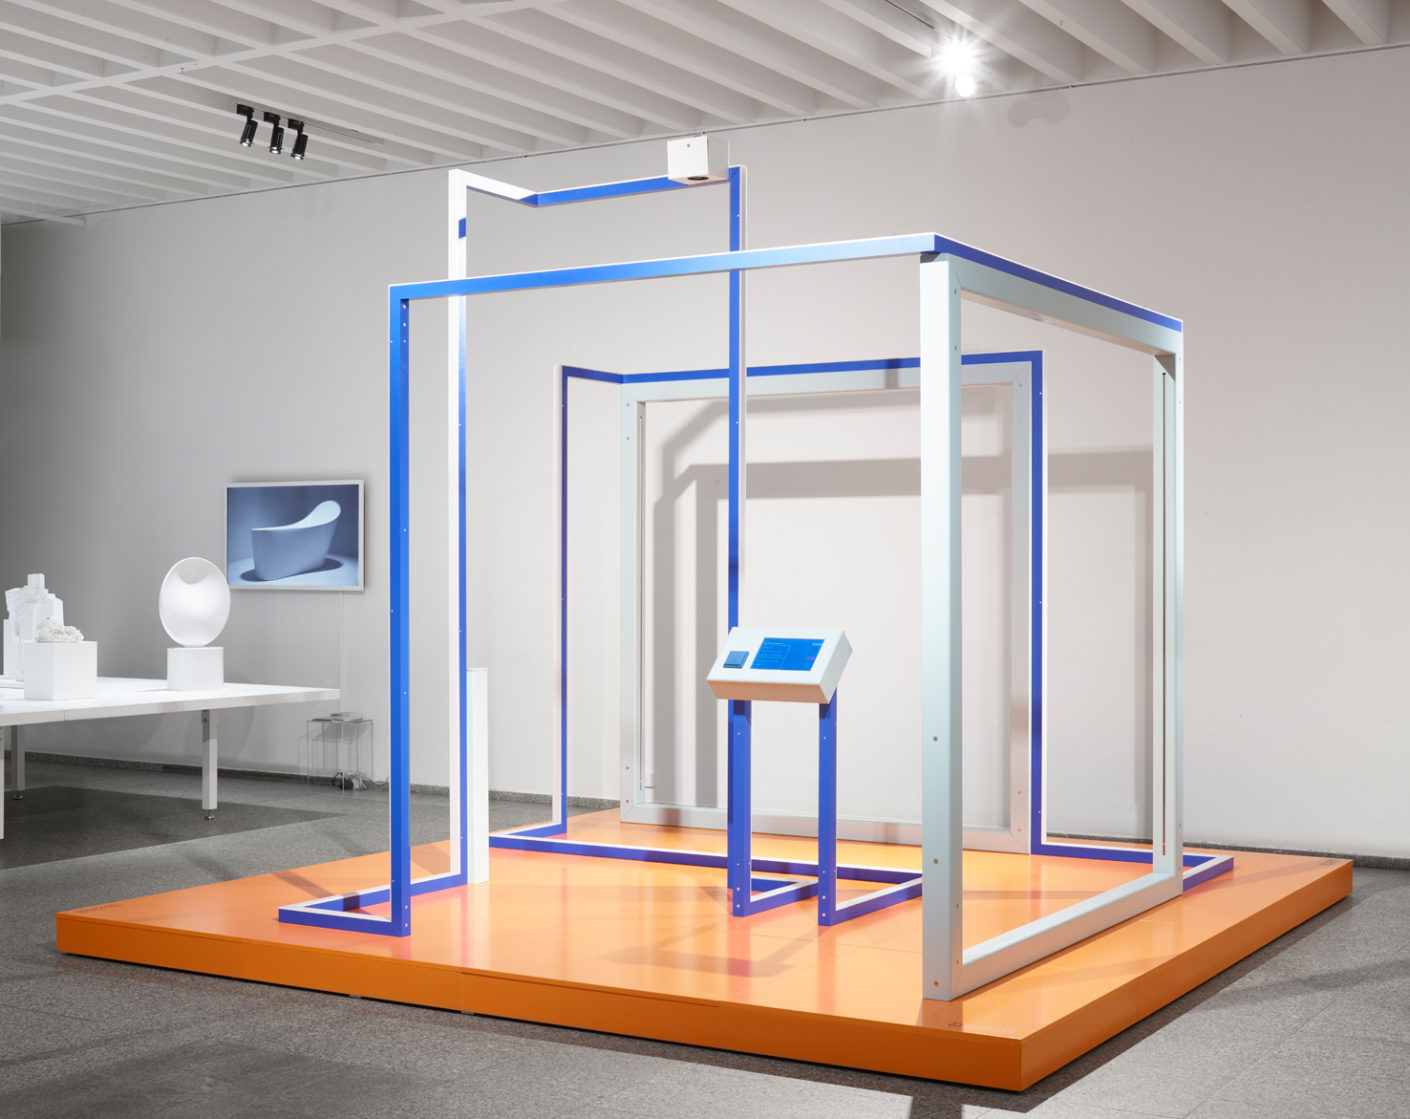 "For the 50th anniversary of the light switch LS 990, Jung translated its elementary components into the interactive installation ""Play to the gallery""."